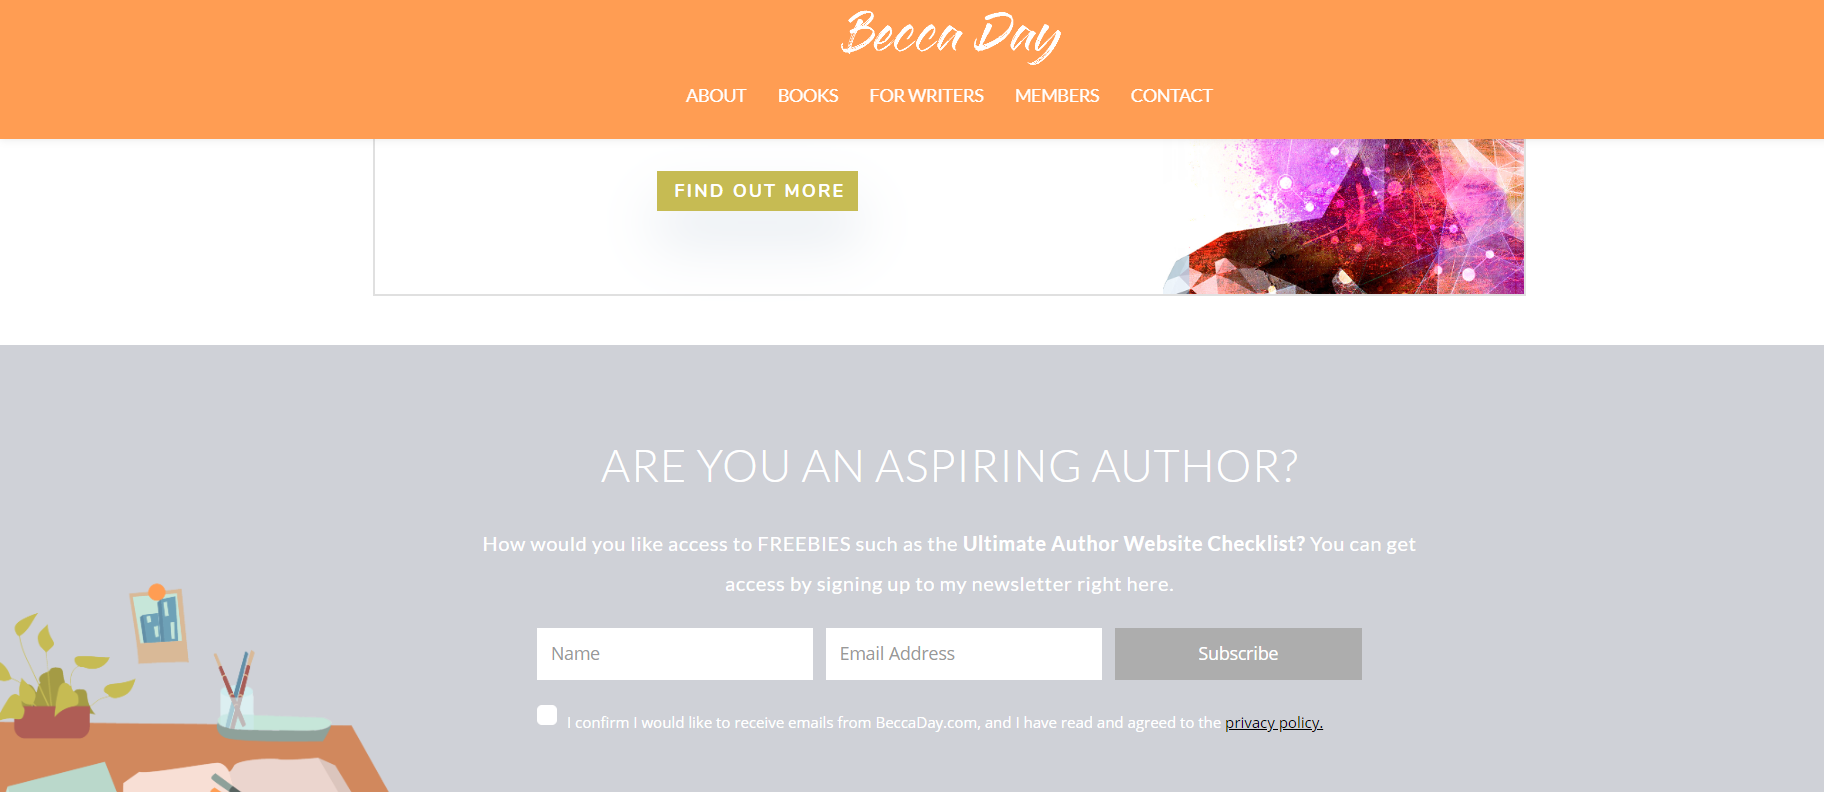 example of an author website opt in incentive